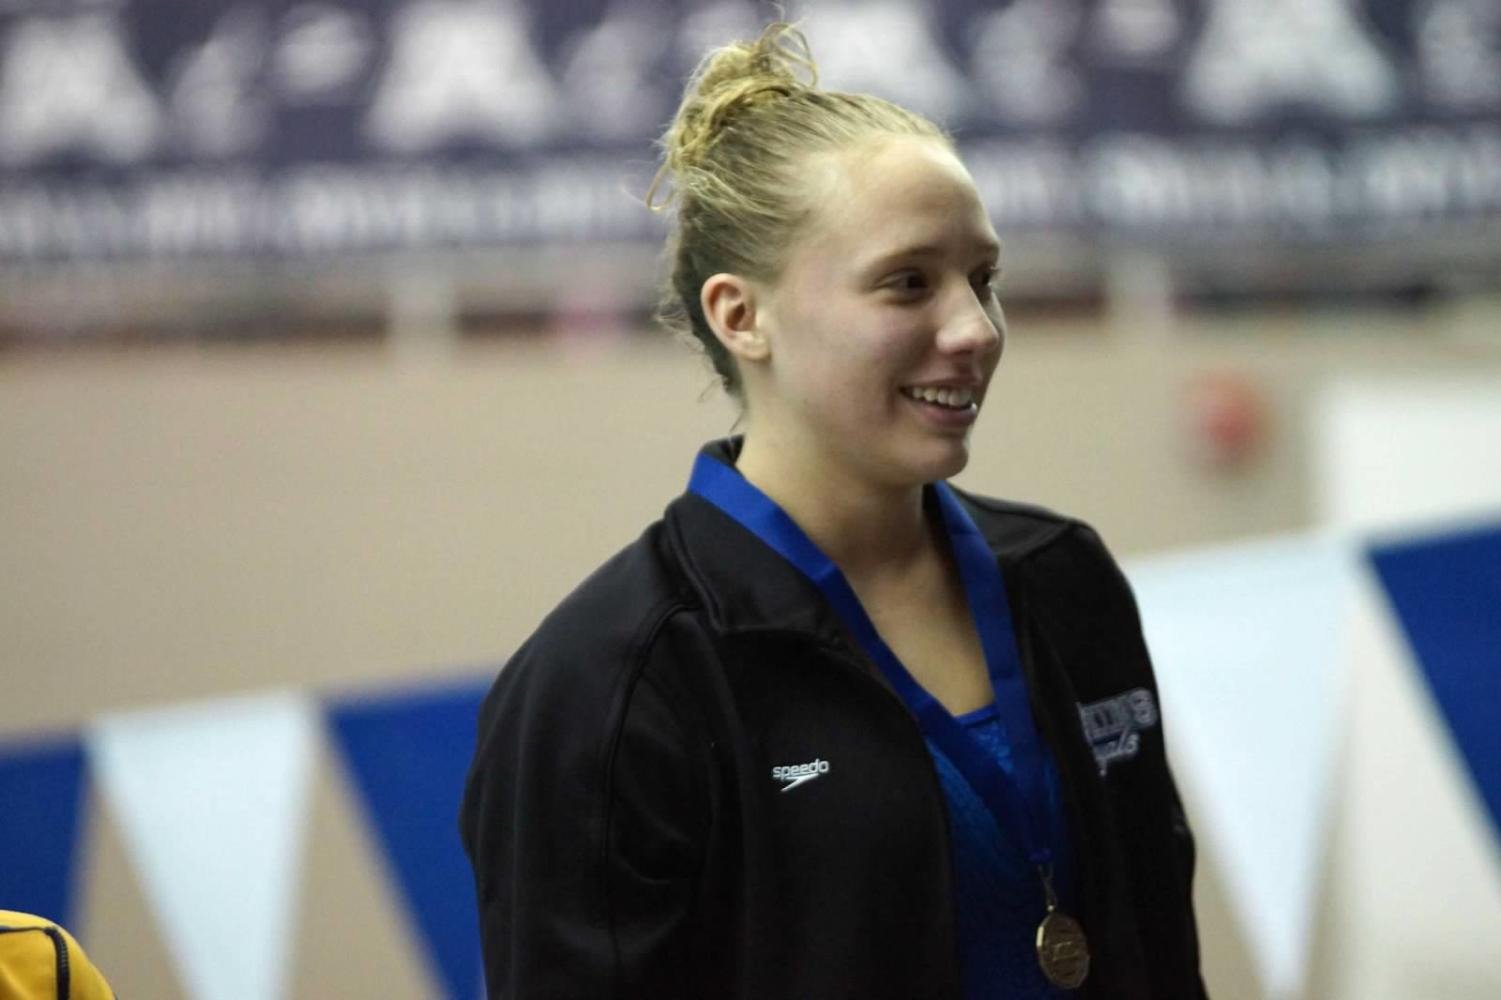 Susanna Fish, junior, on podium after winning section title in diving. Fish qualified for state.